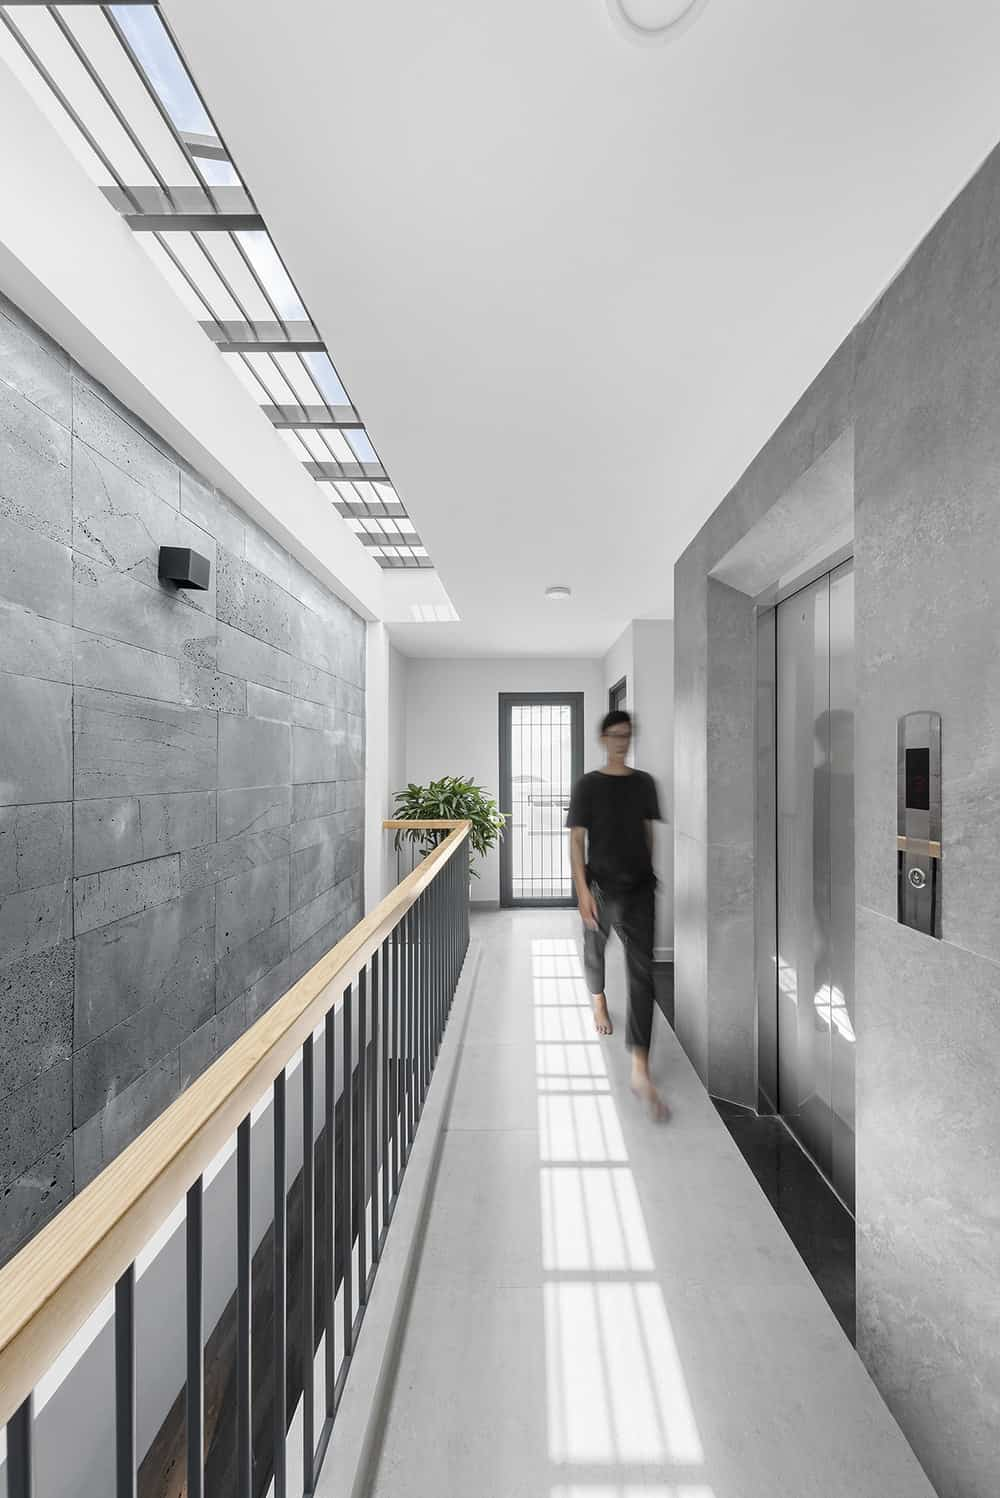 This is a close look at the hallway and indoor balcony of the third floor and the house's modern stainless steel elevator.